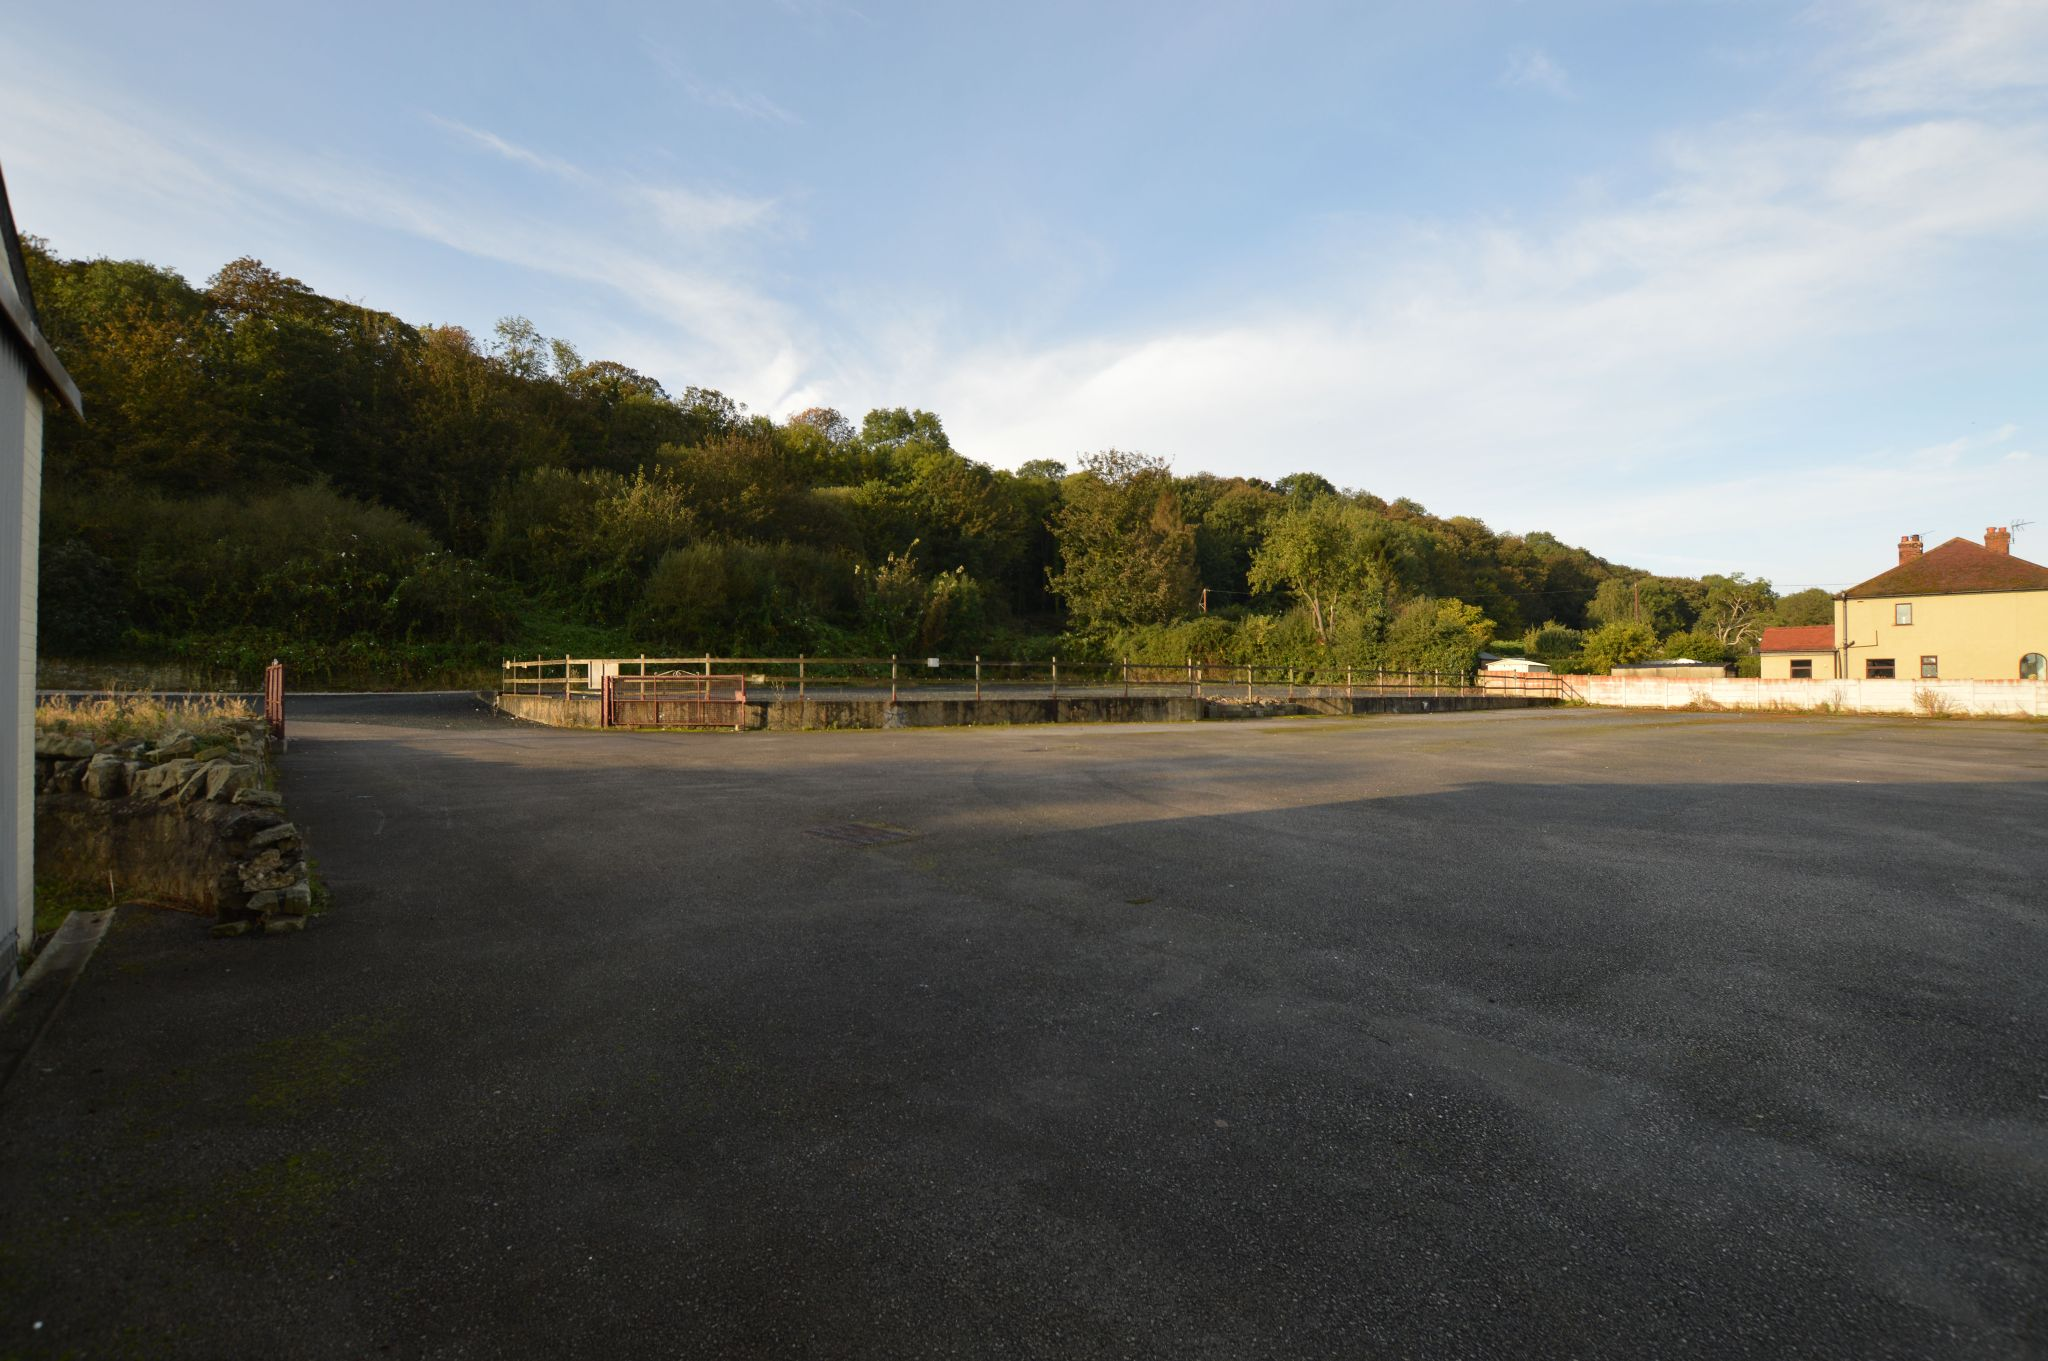 Land For Sale in Holywell - Land View 5